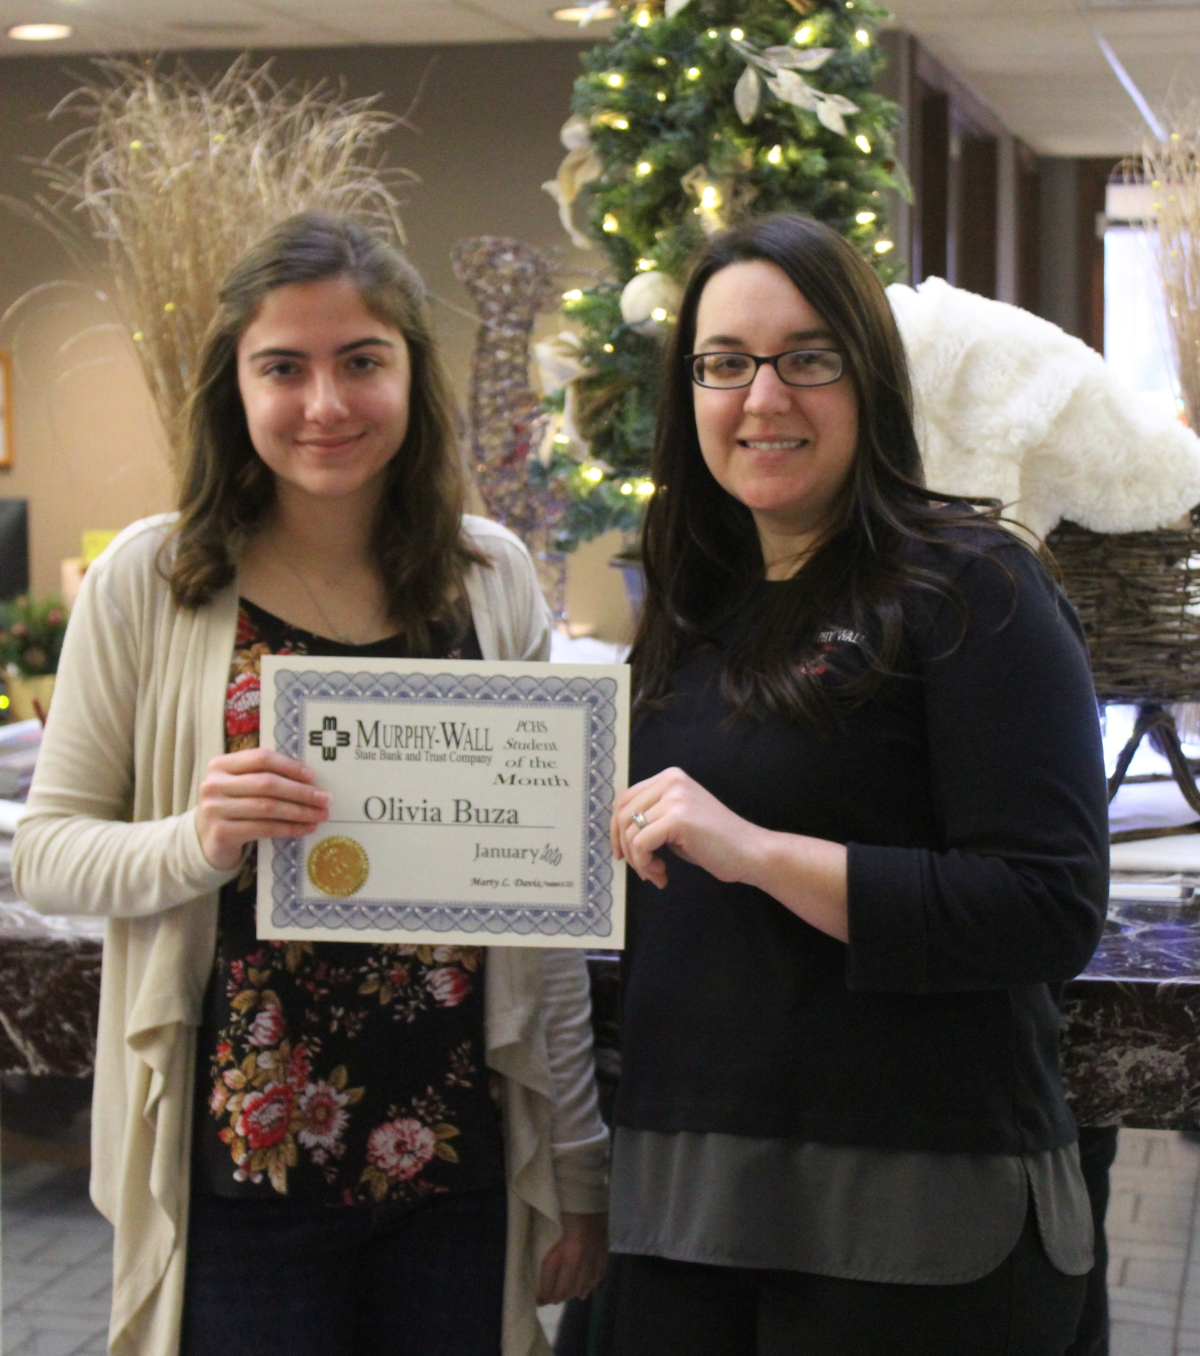 PCHS January 2019 Student of the Month, Olivia Buzza, is pictured receiving her certificate from Denise Smith, Murphy-Wall State Bank Teller Supervisor/Cash Services/Marketing Team Member